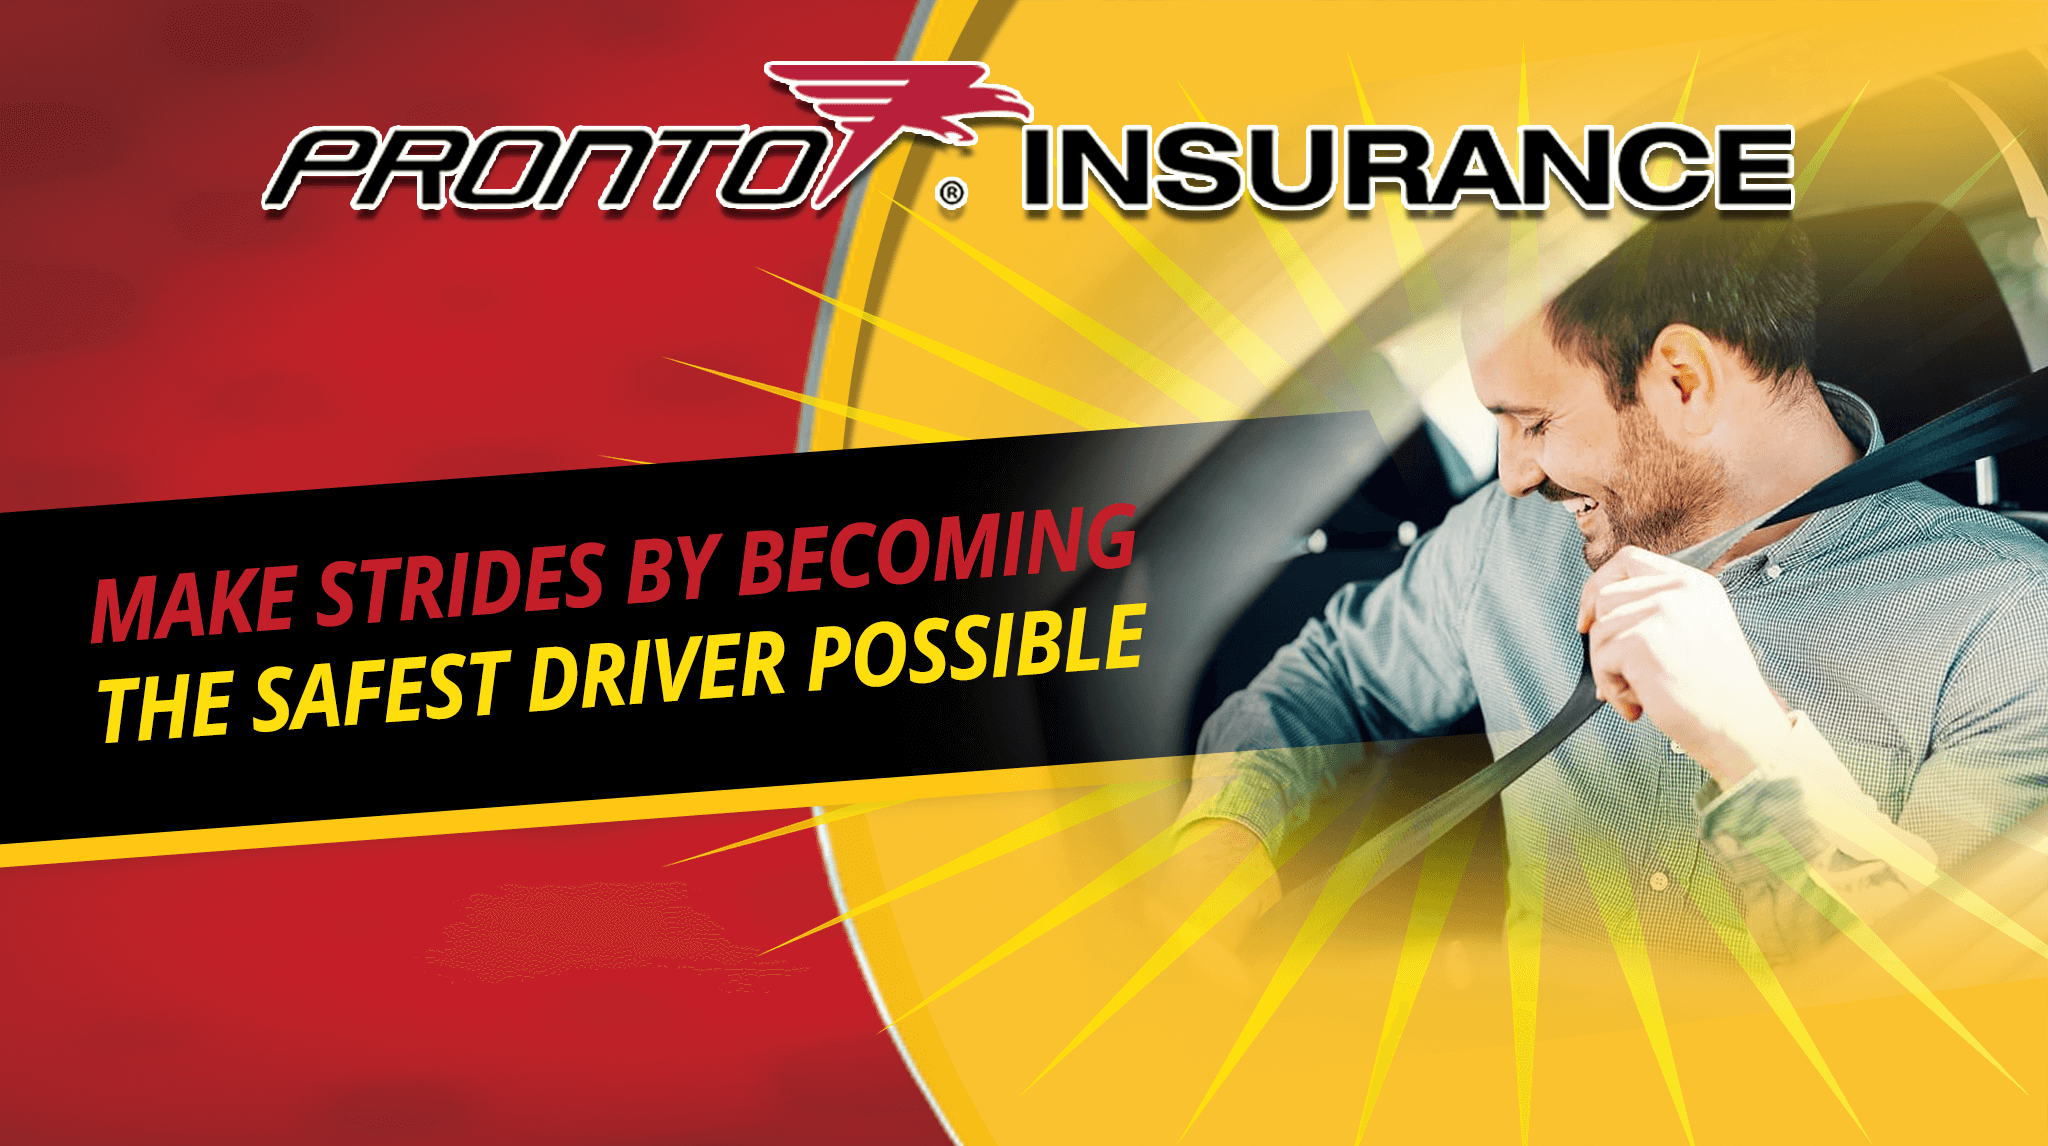 Make Strides by Becoming the Safest Driver Possible